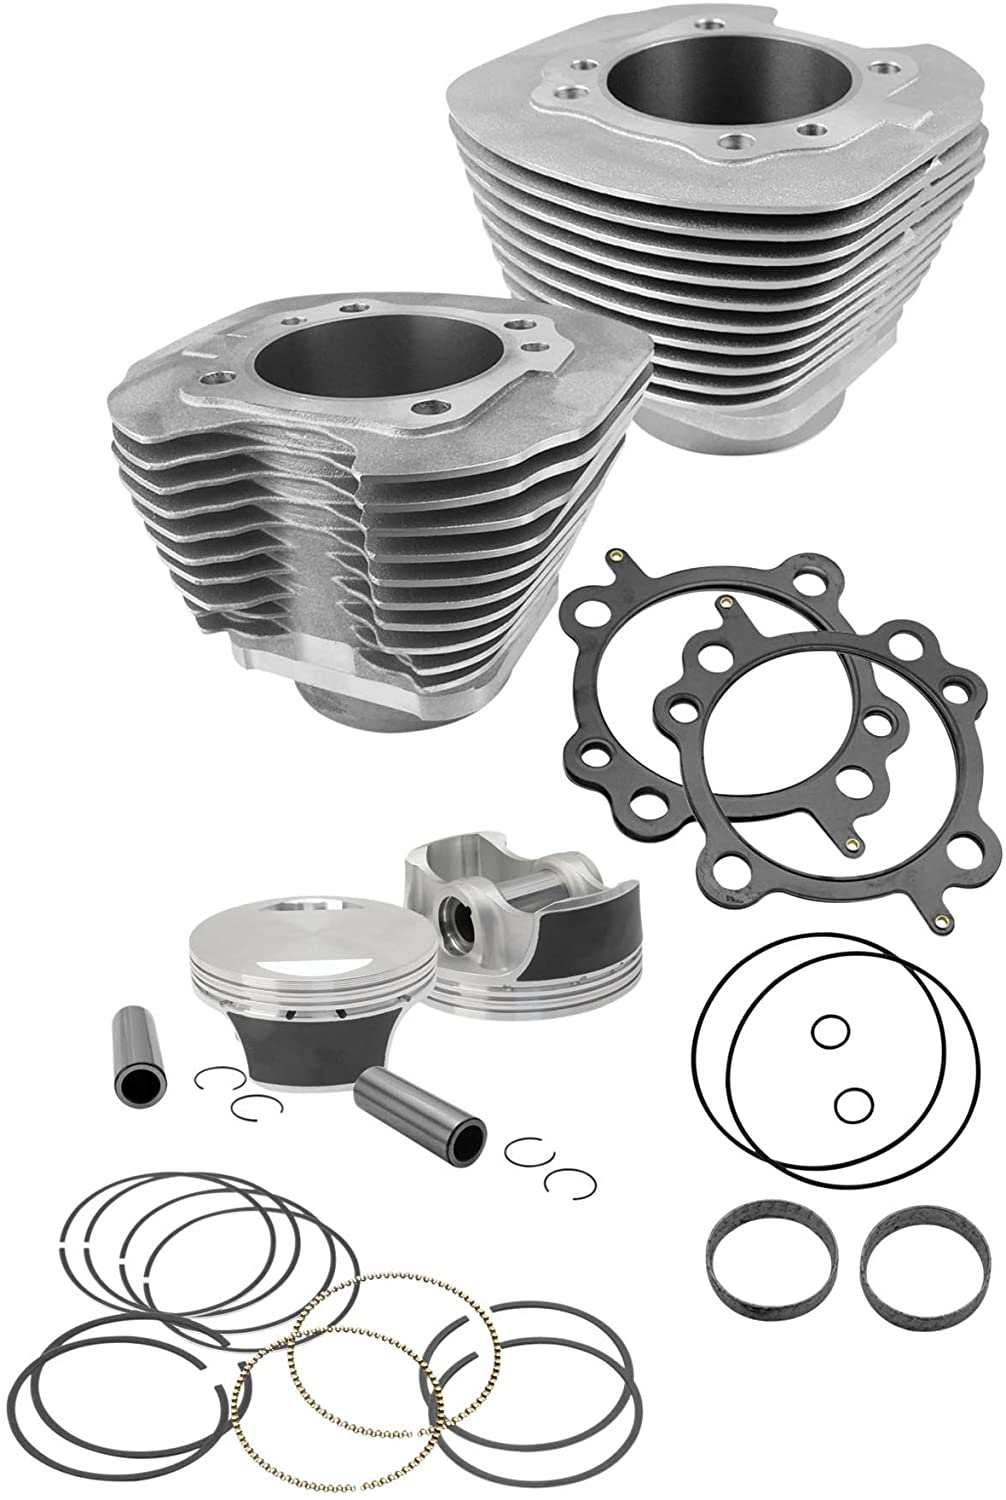 S&S 106 in. Big Bore Black Kit for Harley Davidson 2006-13 FXD, 2007-13 Big Twin models - One Size